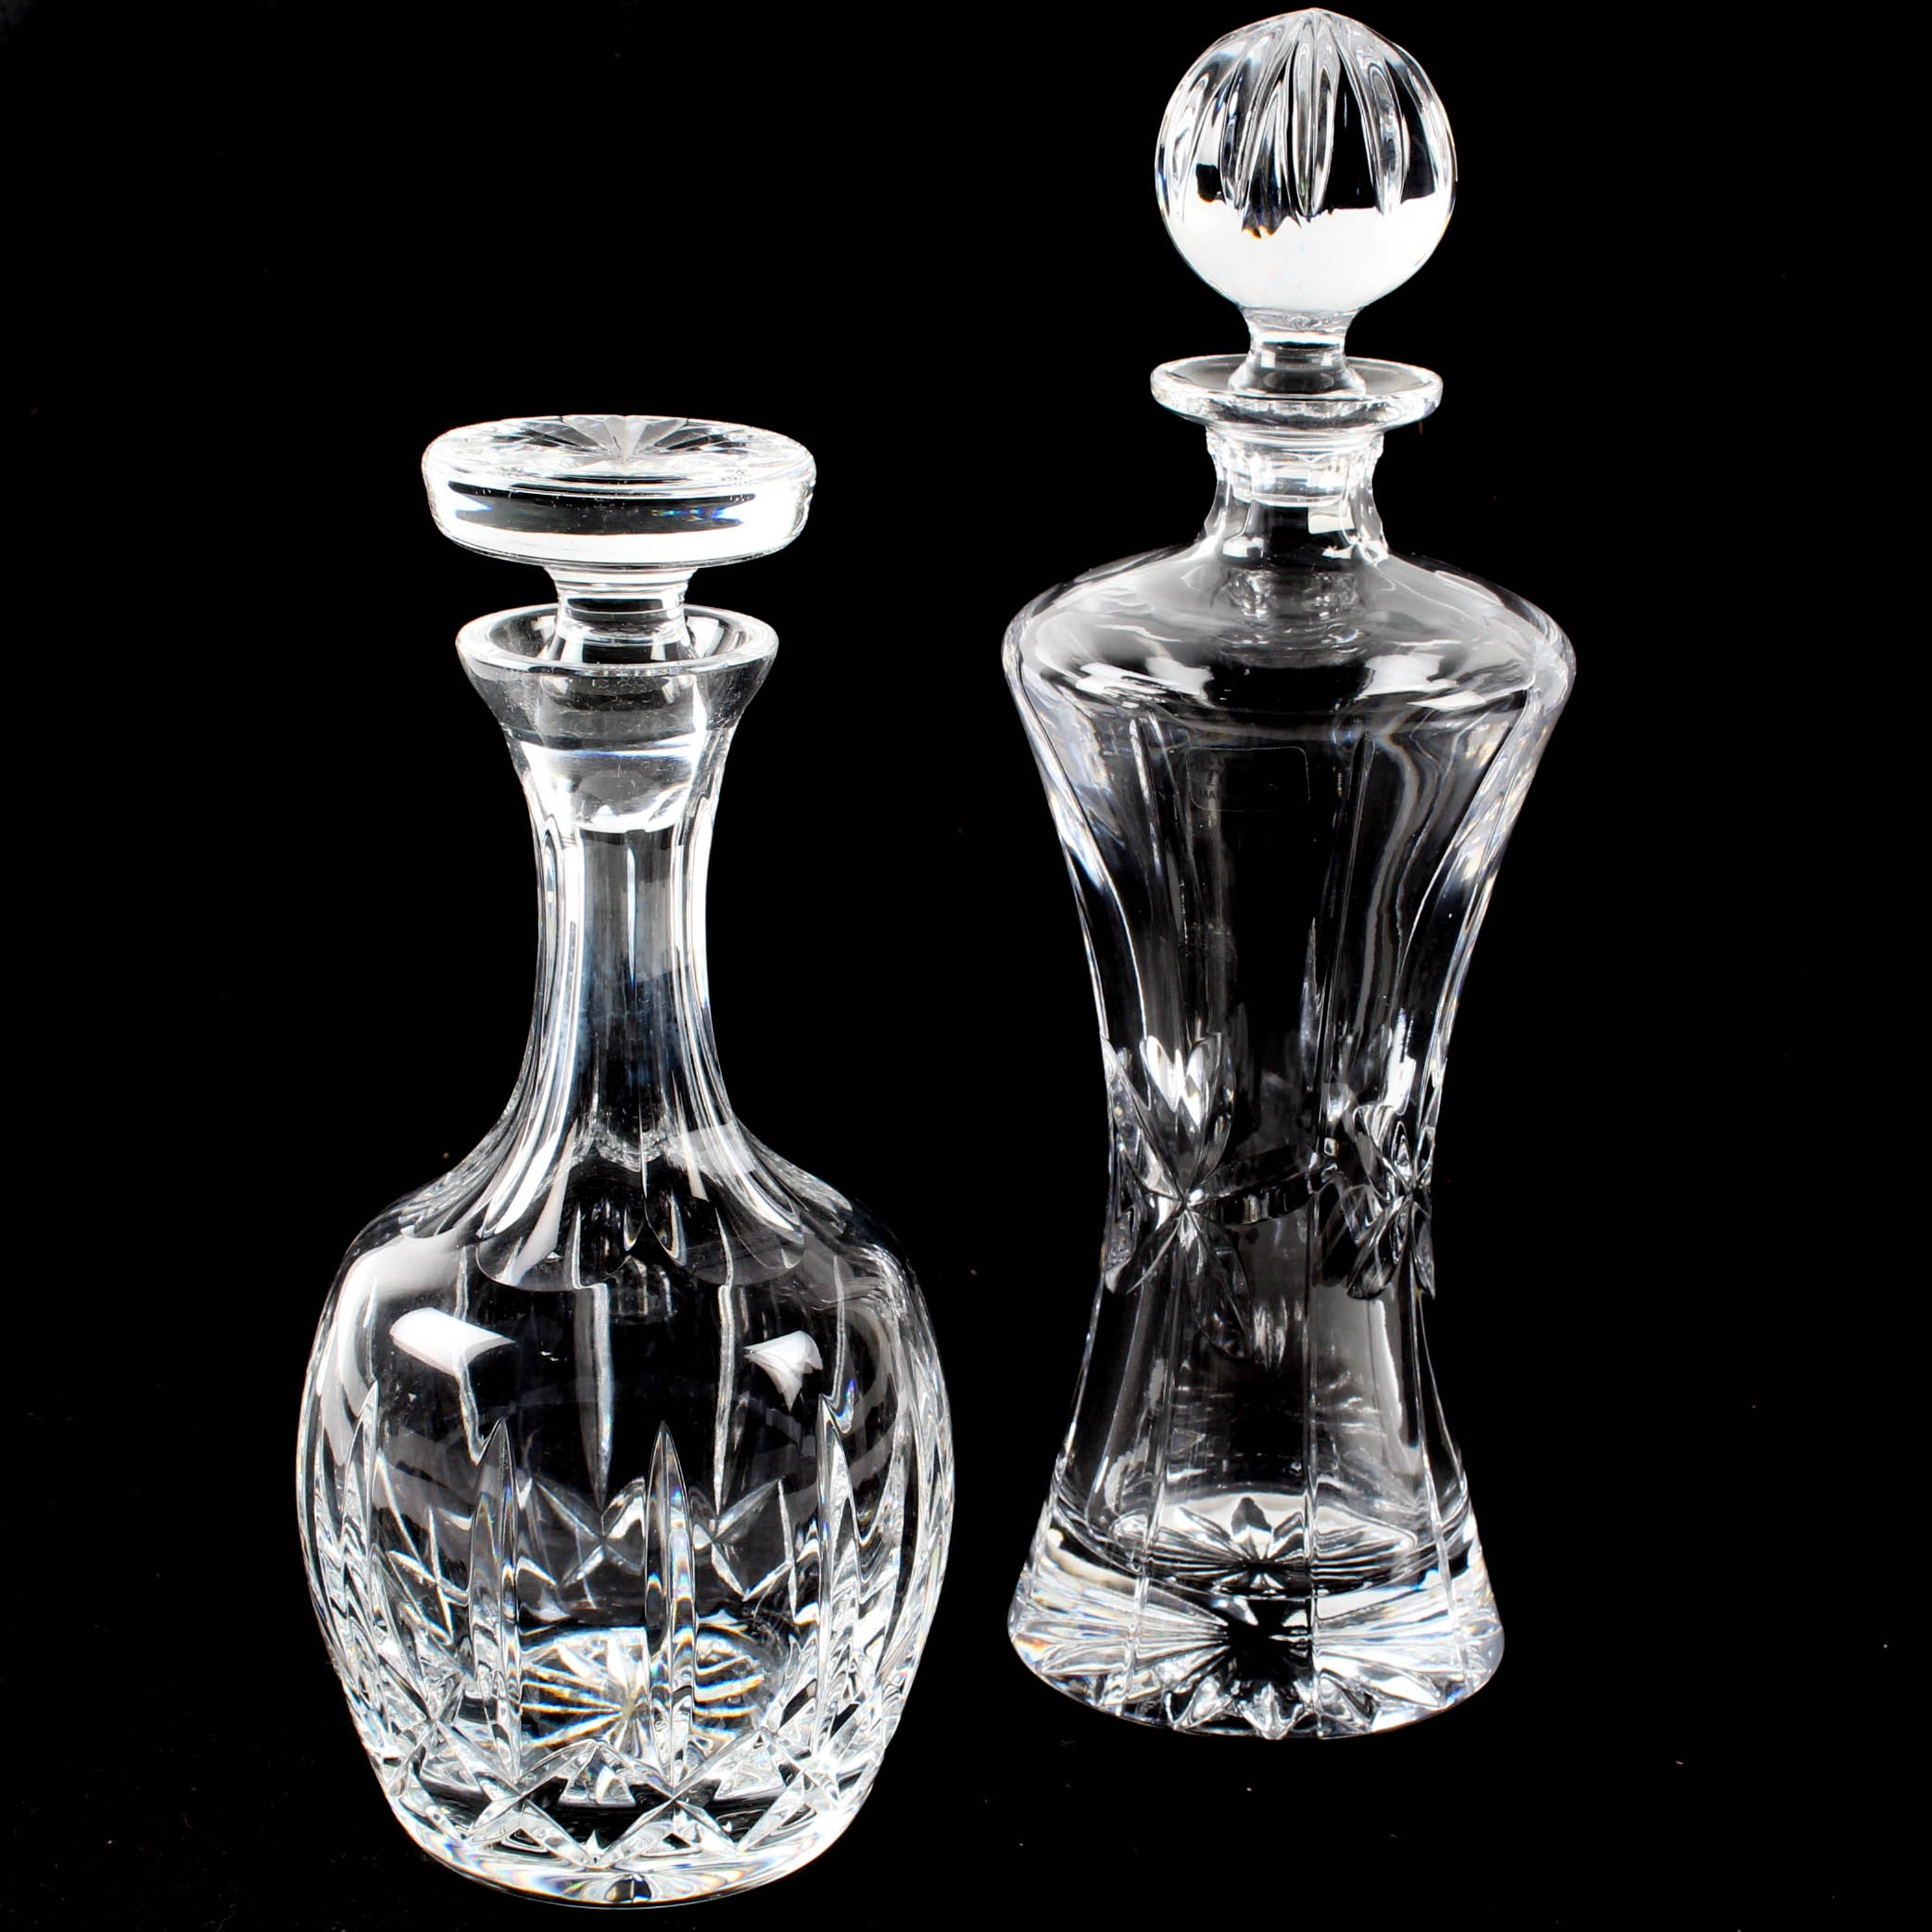 Atlantis and Towle Crystal Decanters